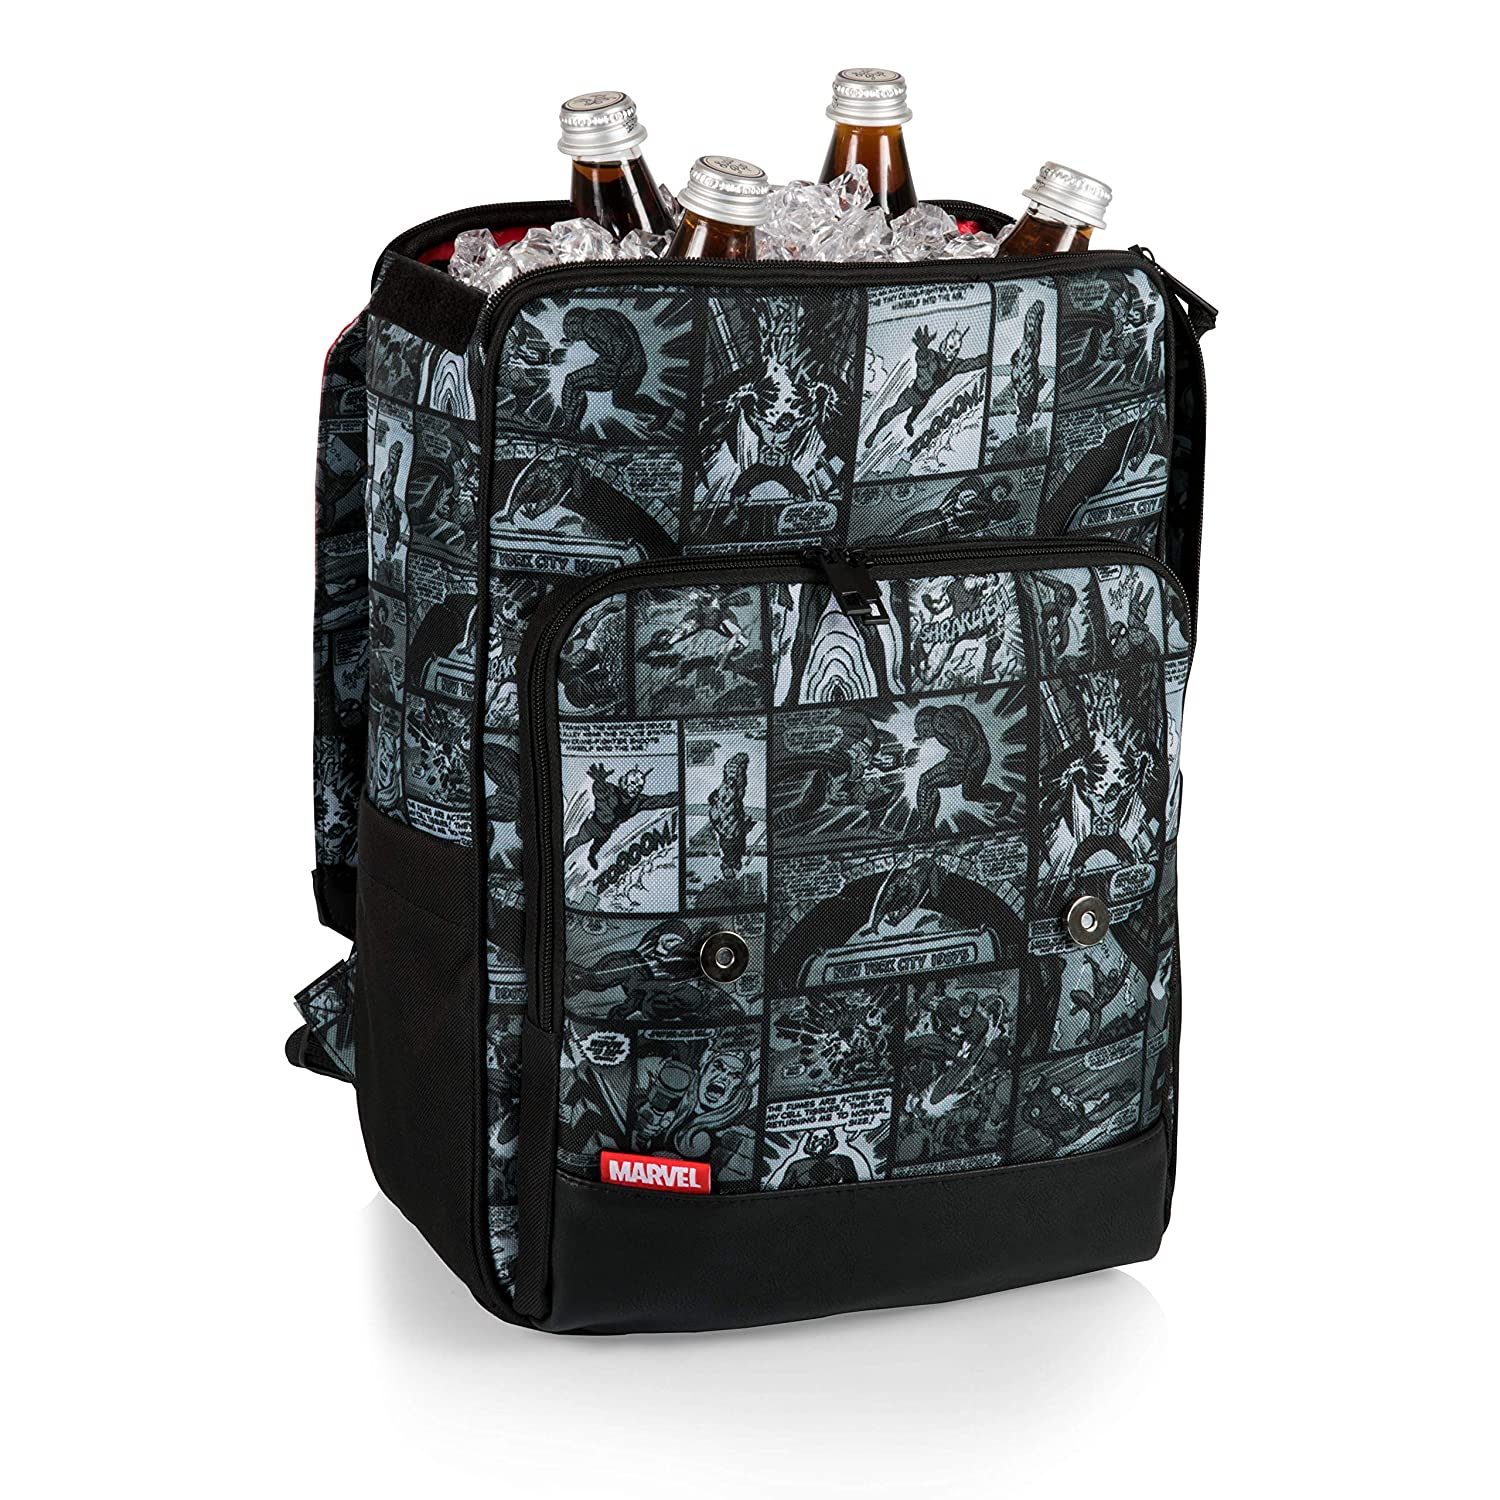 Marvel Comic Strips Insulated Backpack Cooler Tote Picnic Time Sports-non license 636-00-422-081-15